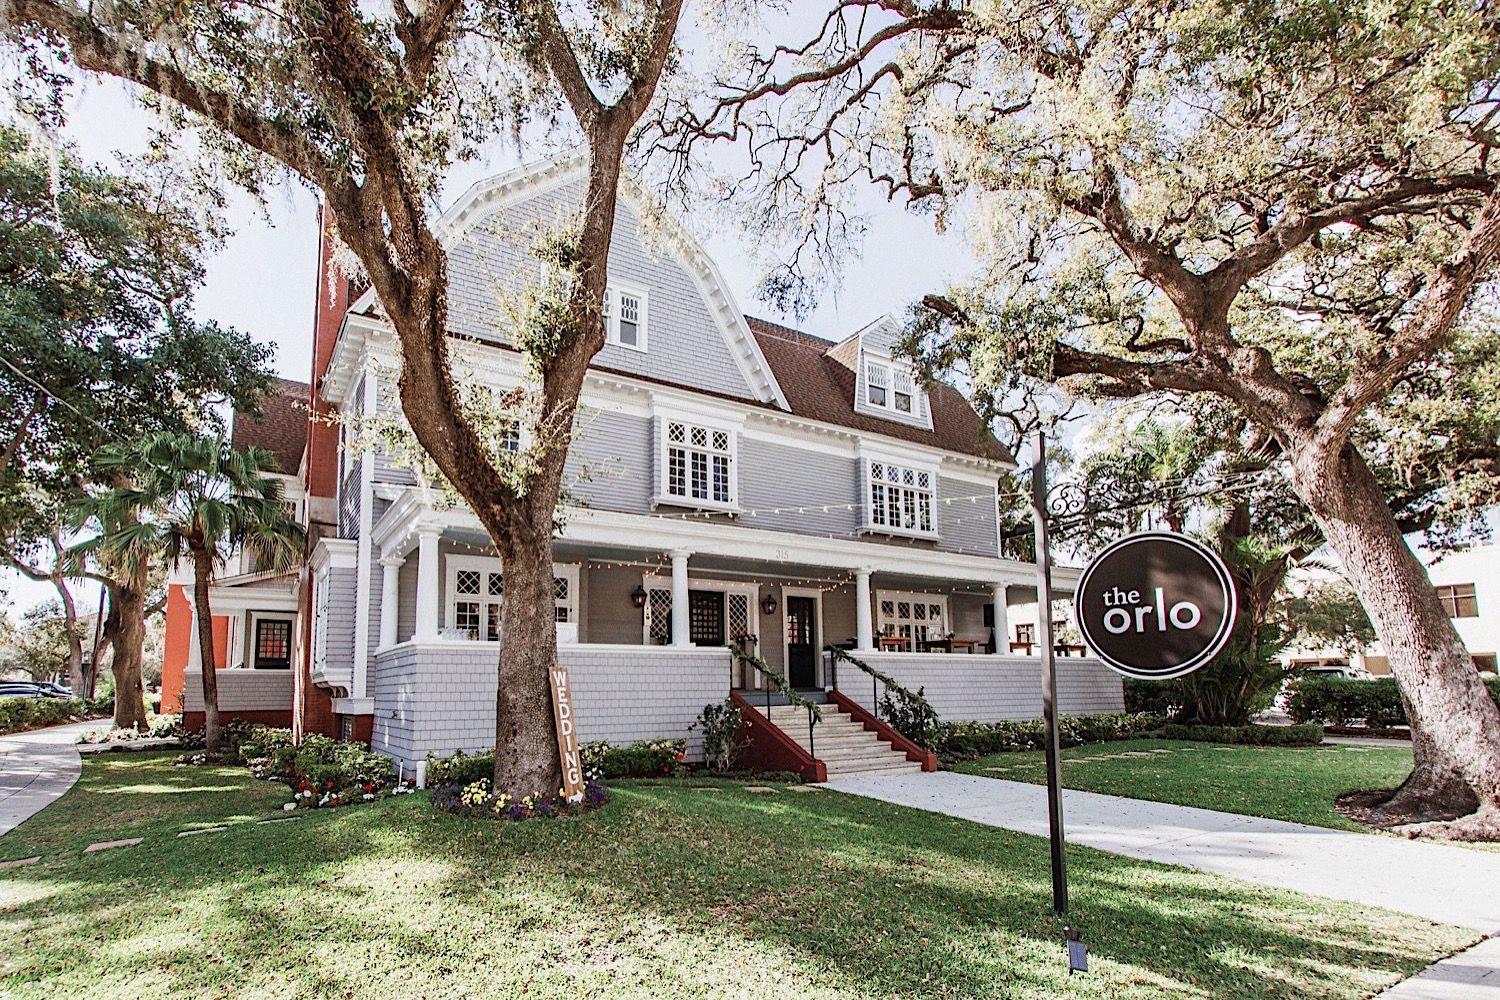 The Orlo, a historic wedding venue in Tampa, FL which is a gray two story house